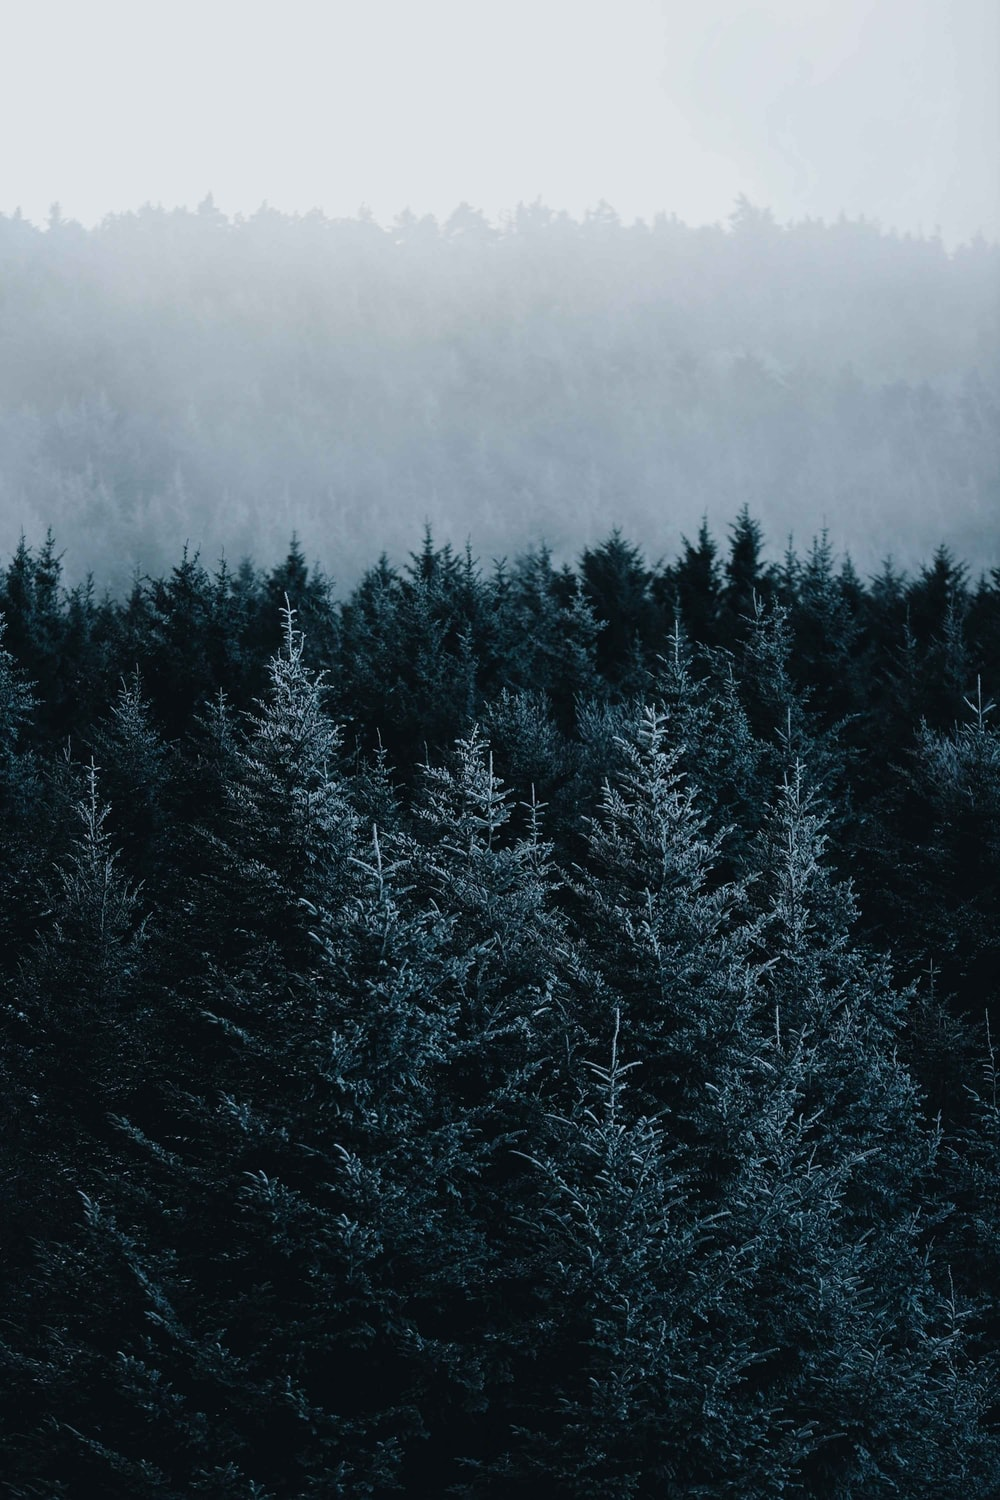 green pine trees covered with snow